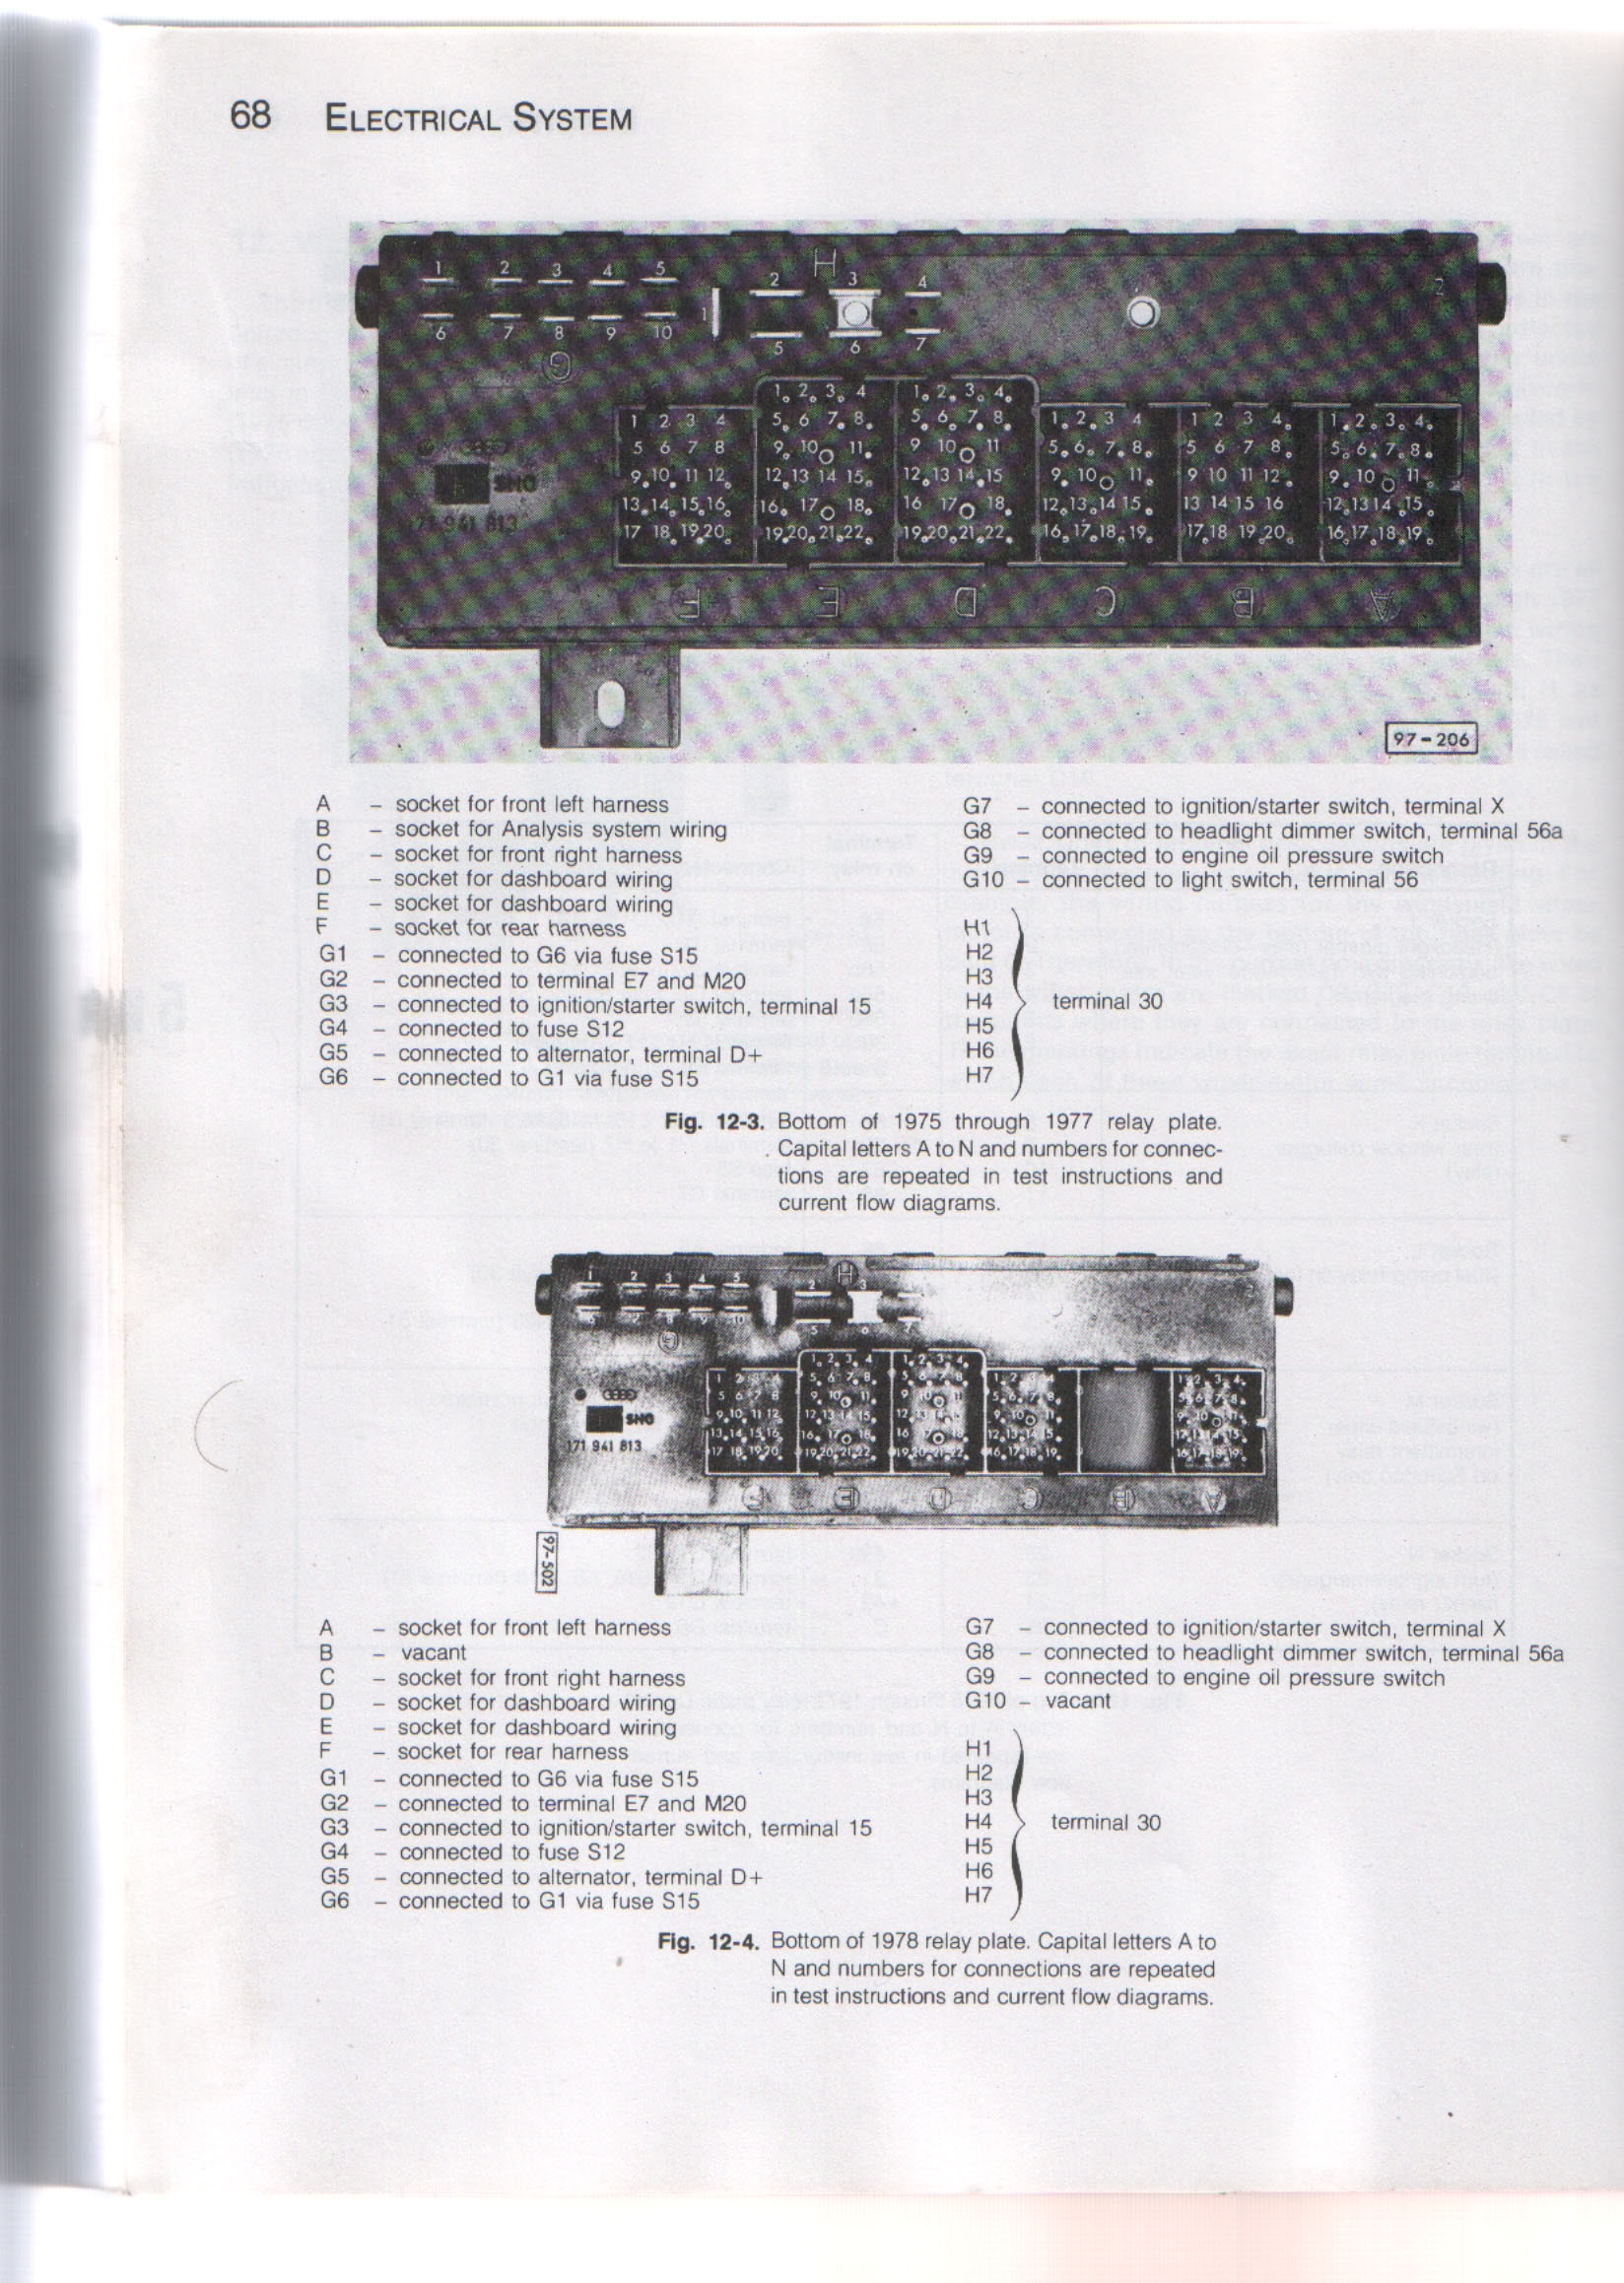 2009 vw rabbit fuse box diagram gAYbQTL 2007 vw rabbit fuse box diagram image details 1982 vw rabbit fuse box at soozxer.org